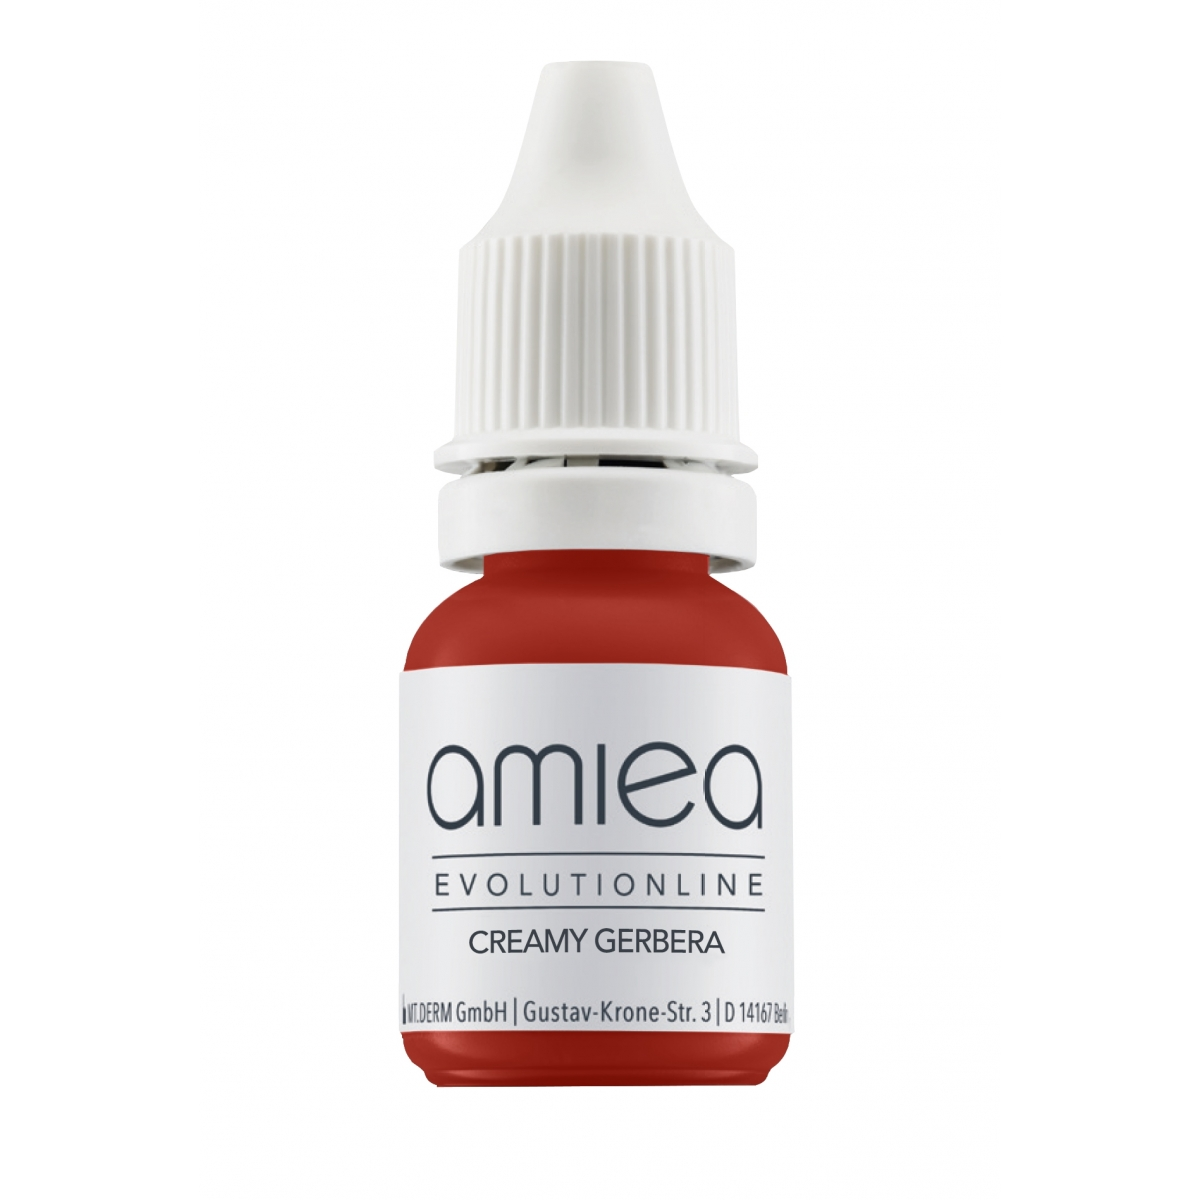 Evolutionline (5 ml) - PIGMENTS AMIEA EVOLUTIONLINE CREAMY GERBERA, 5 ml